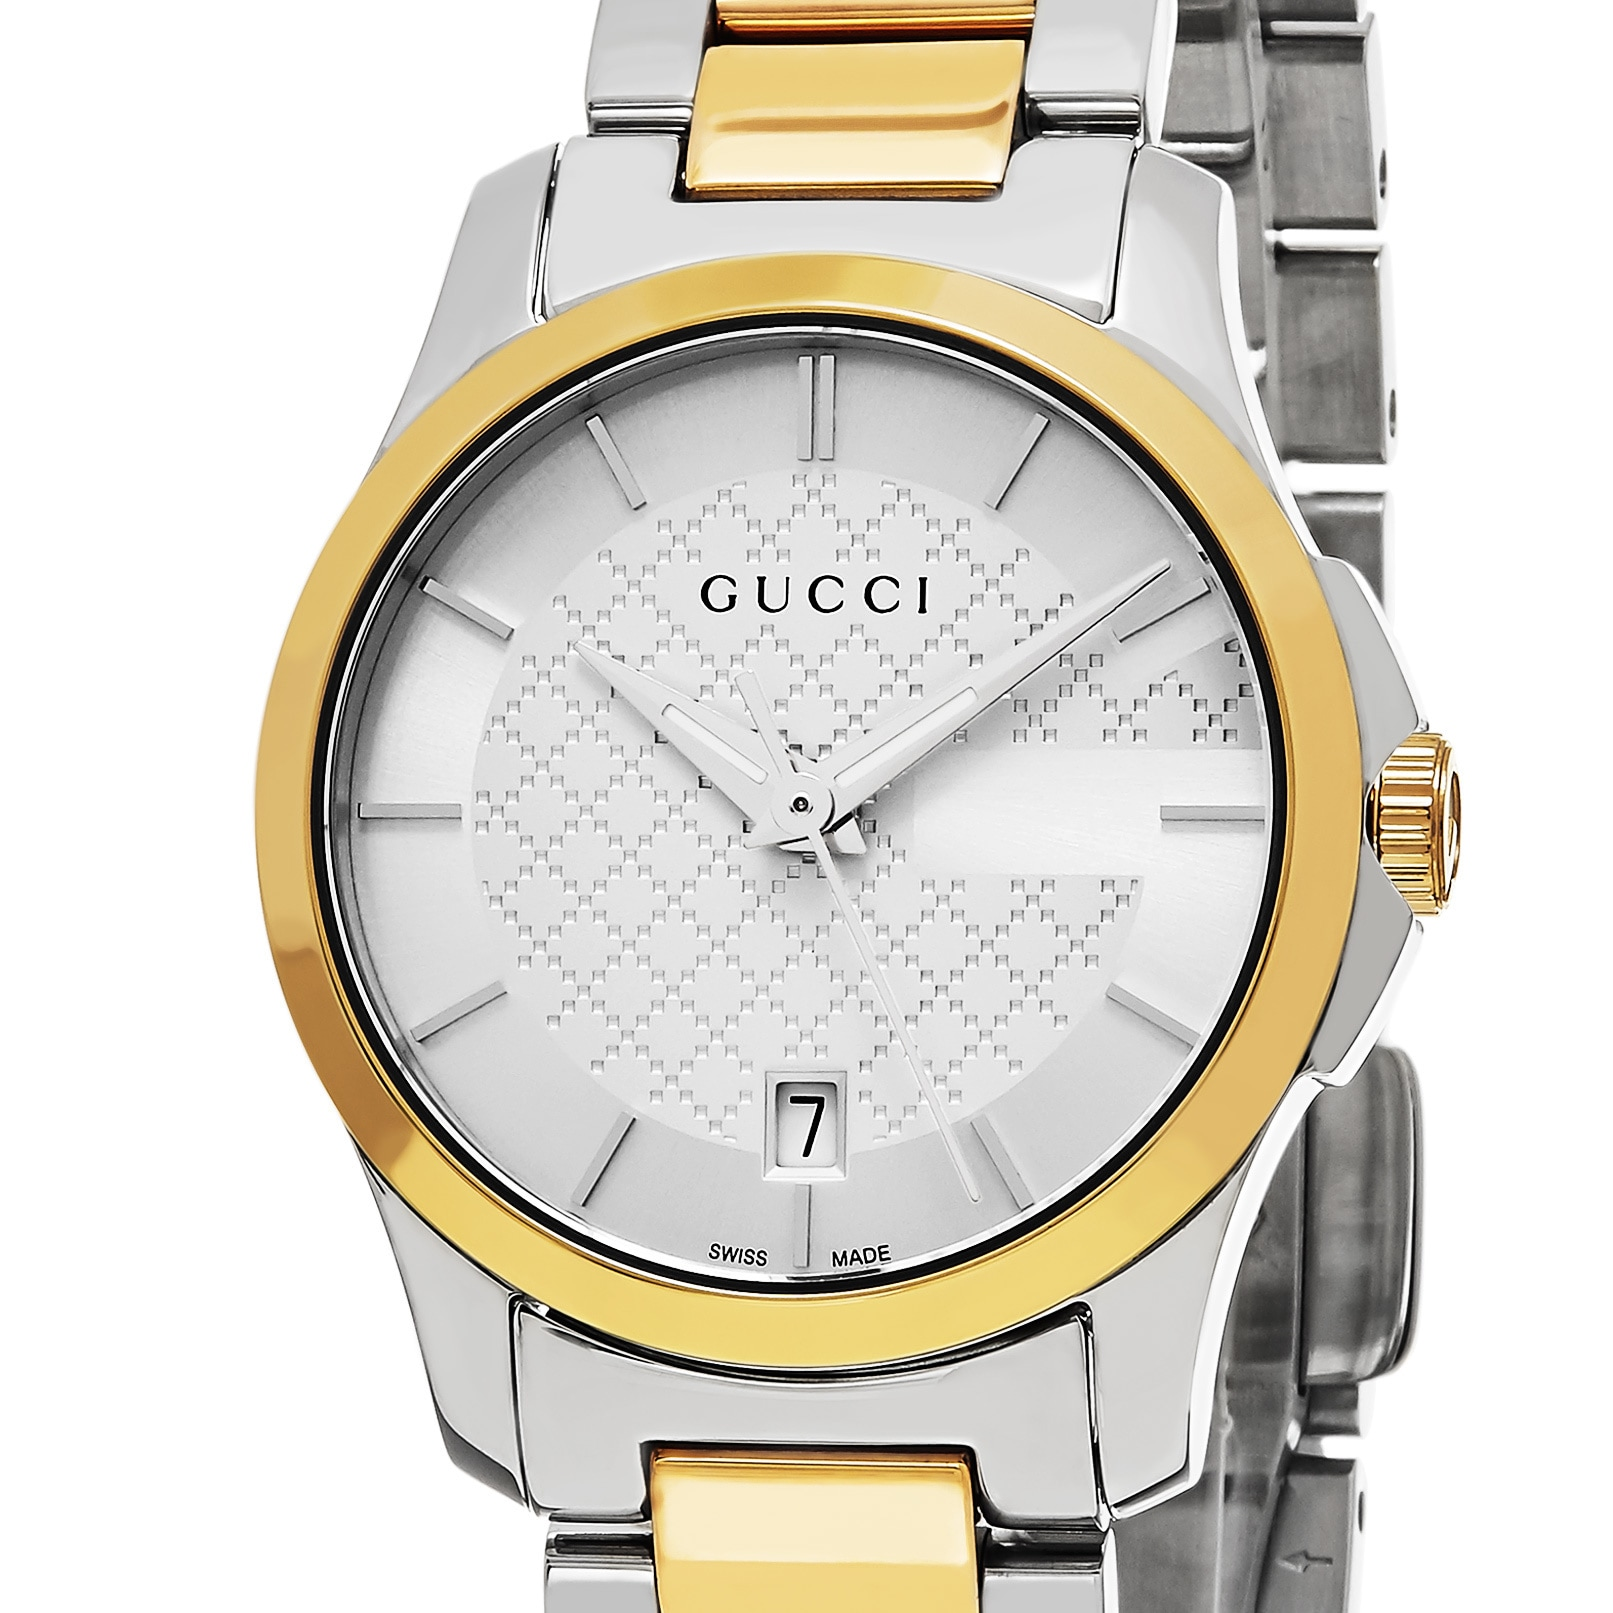 46069aa207c Shop Gucci Women s  Timeless  Silver Dial Two Tone Stainless Steel Swiss  Quartz Watch - Free Shipping Today - Overstock - 11590802